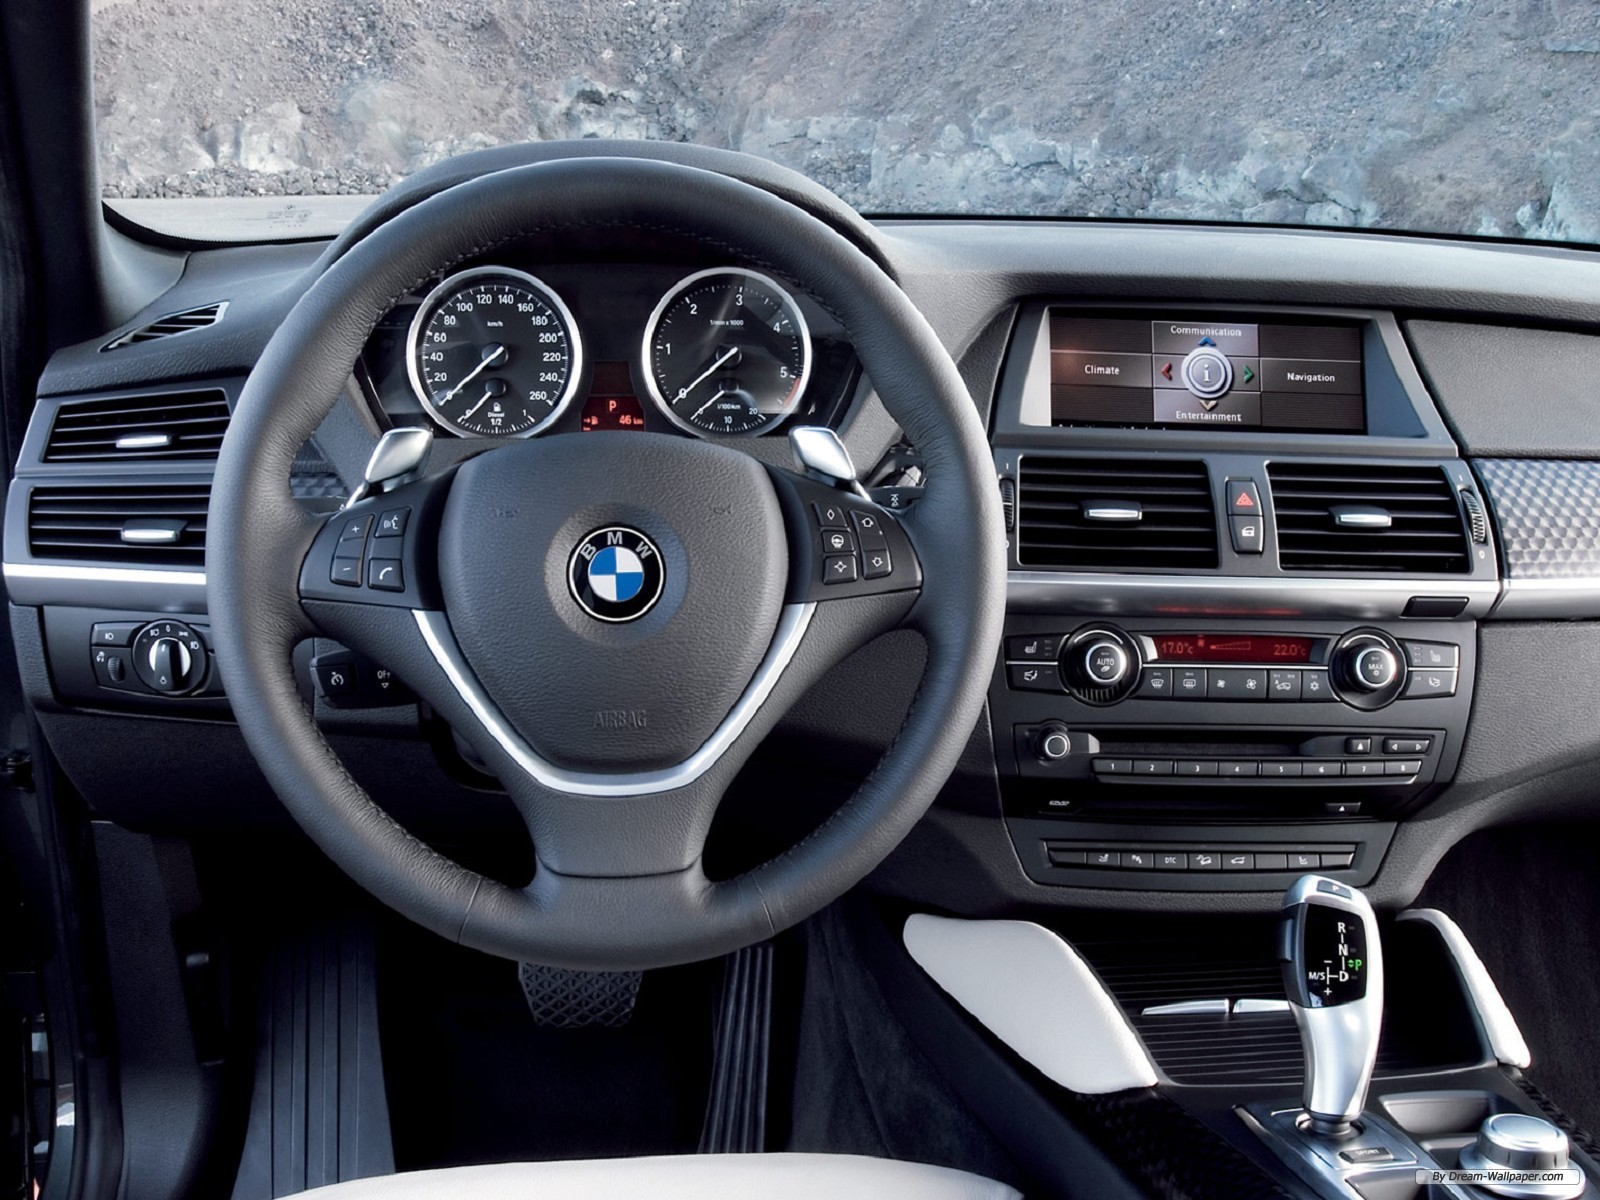 1600x1200 - BMW X6 Wallpapers 19